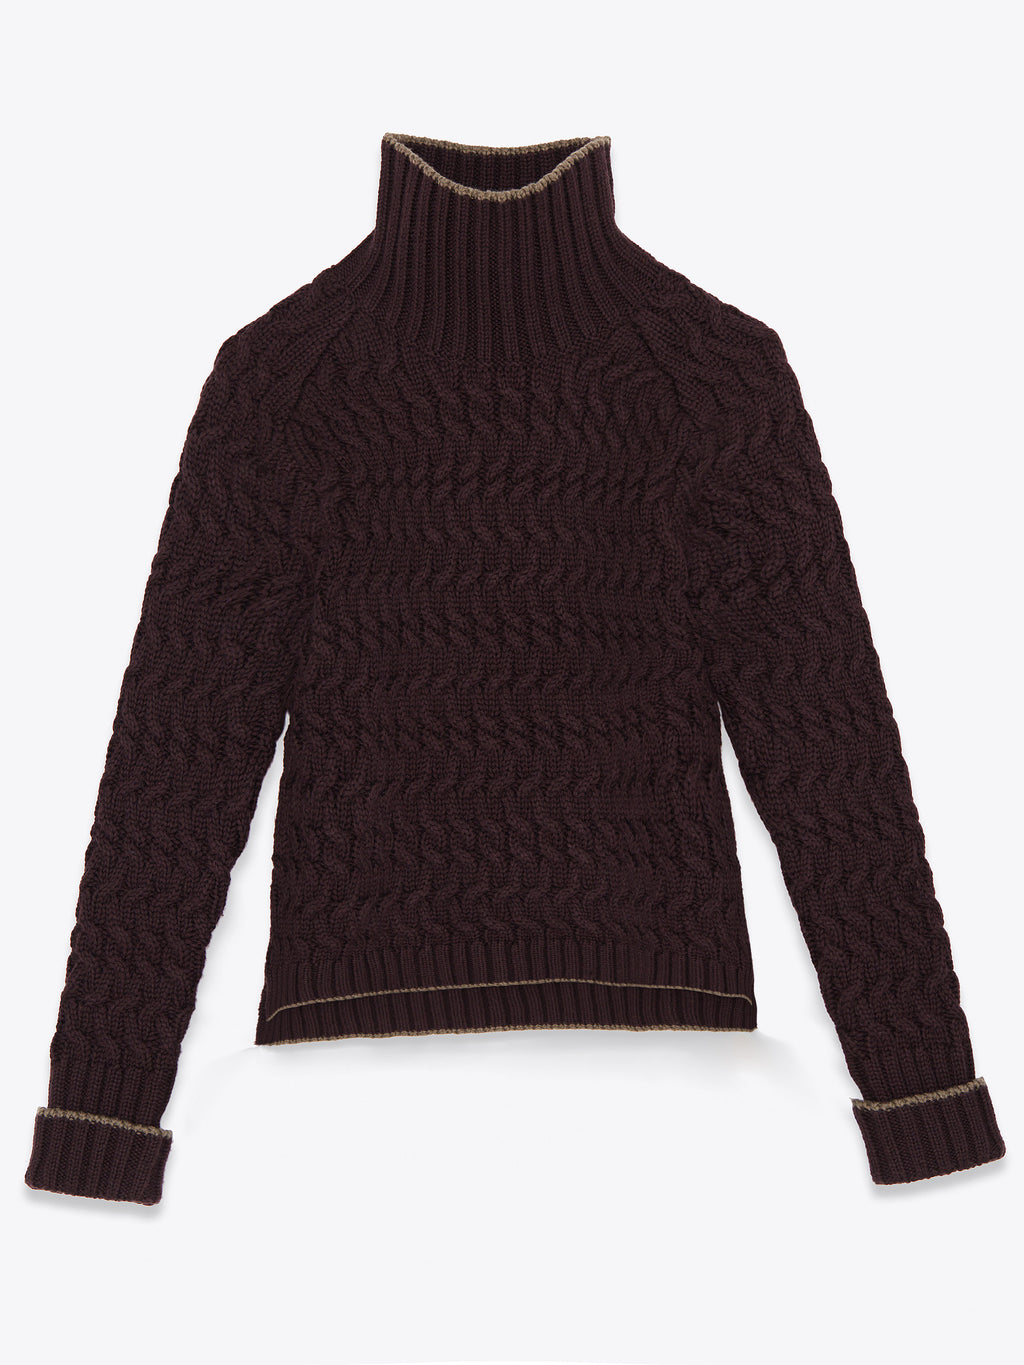 06-ply Kennedy Sweater